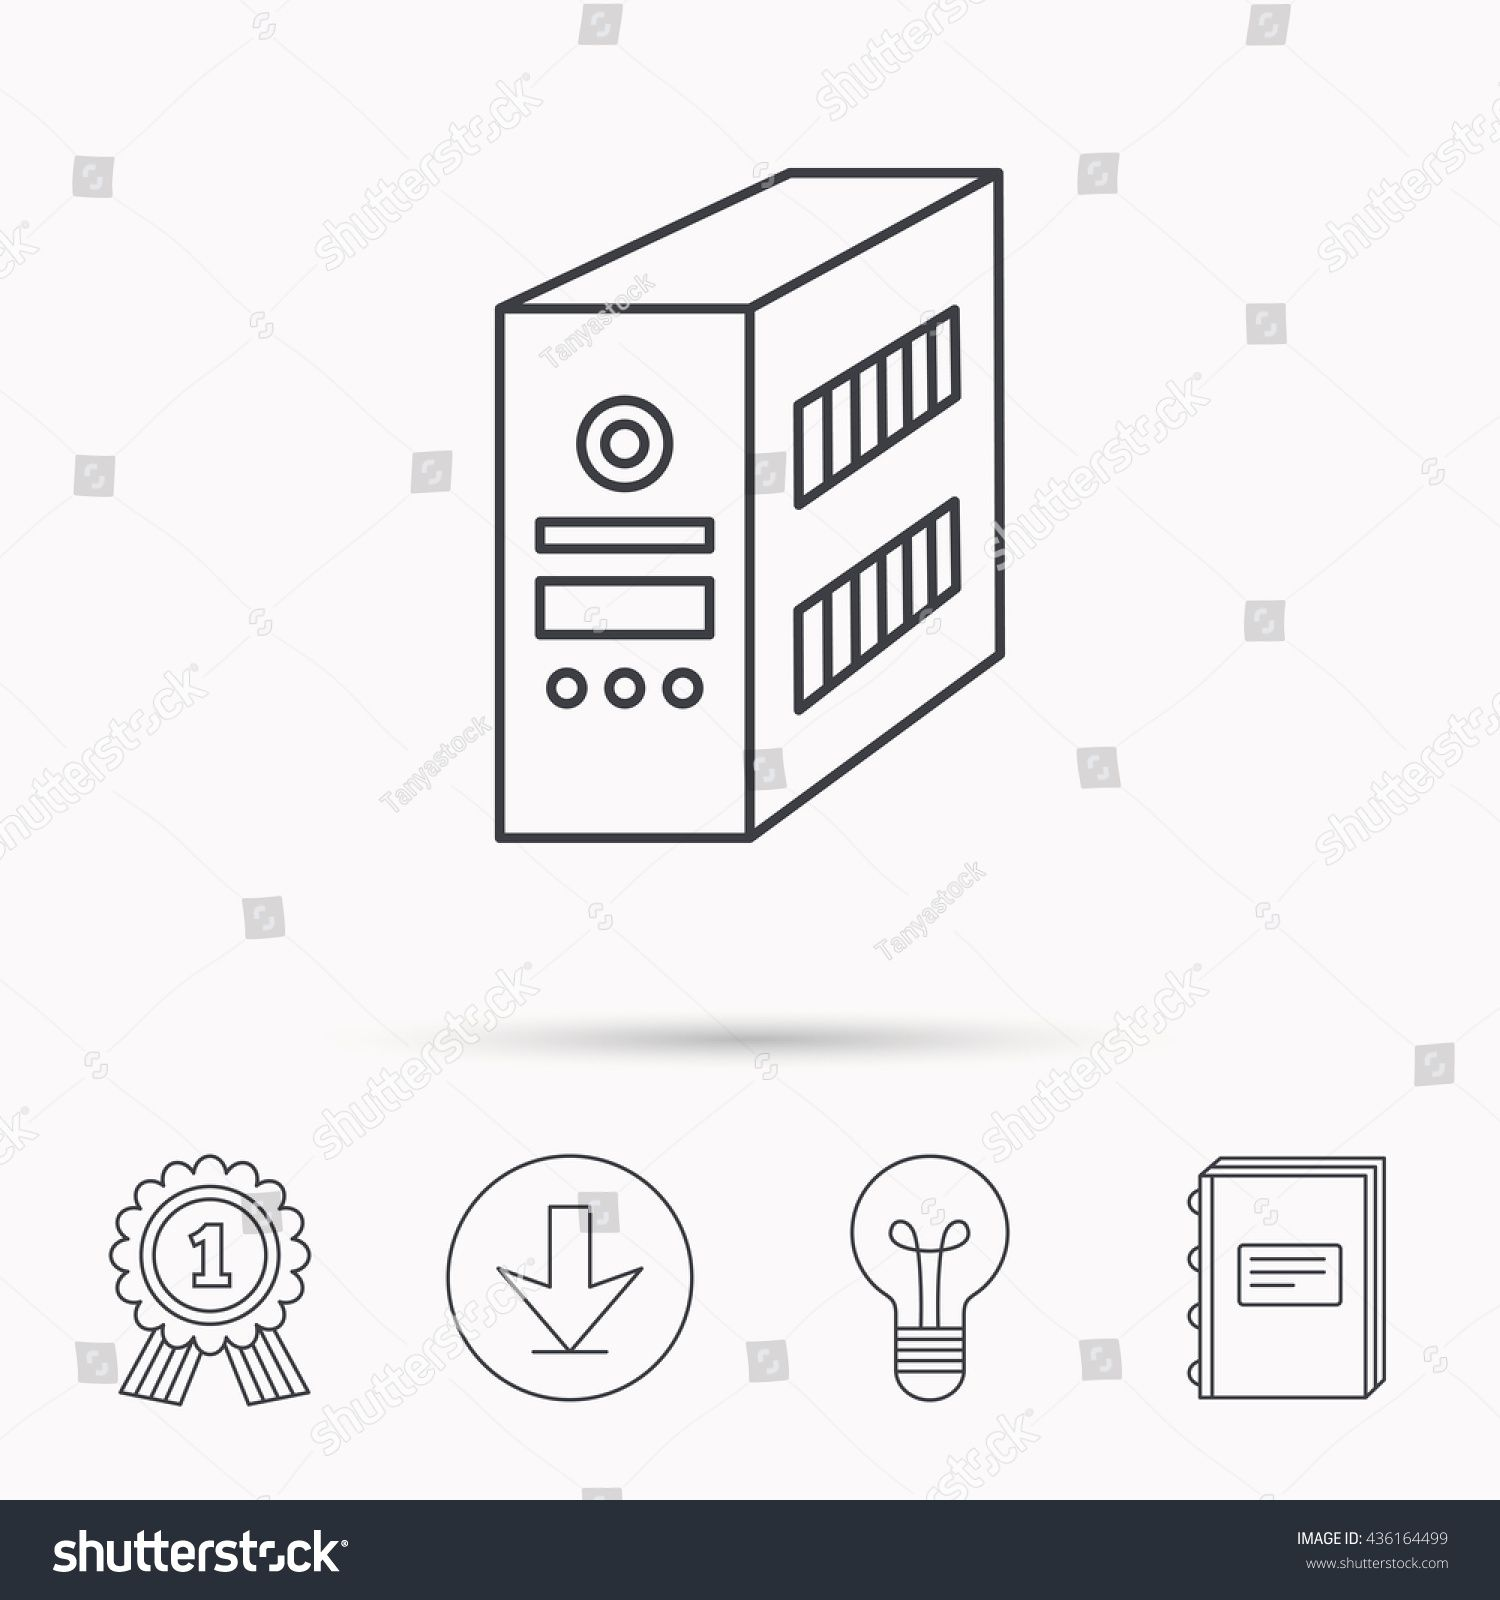 Computer Server Icon Pc Case Or Tower Sign Download Arrow Lamp Learn Book And Award Medal Icons Ad Aff In 2020 Computer Server Pc Cases Modern Resume Template